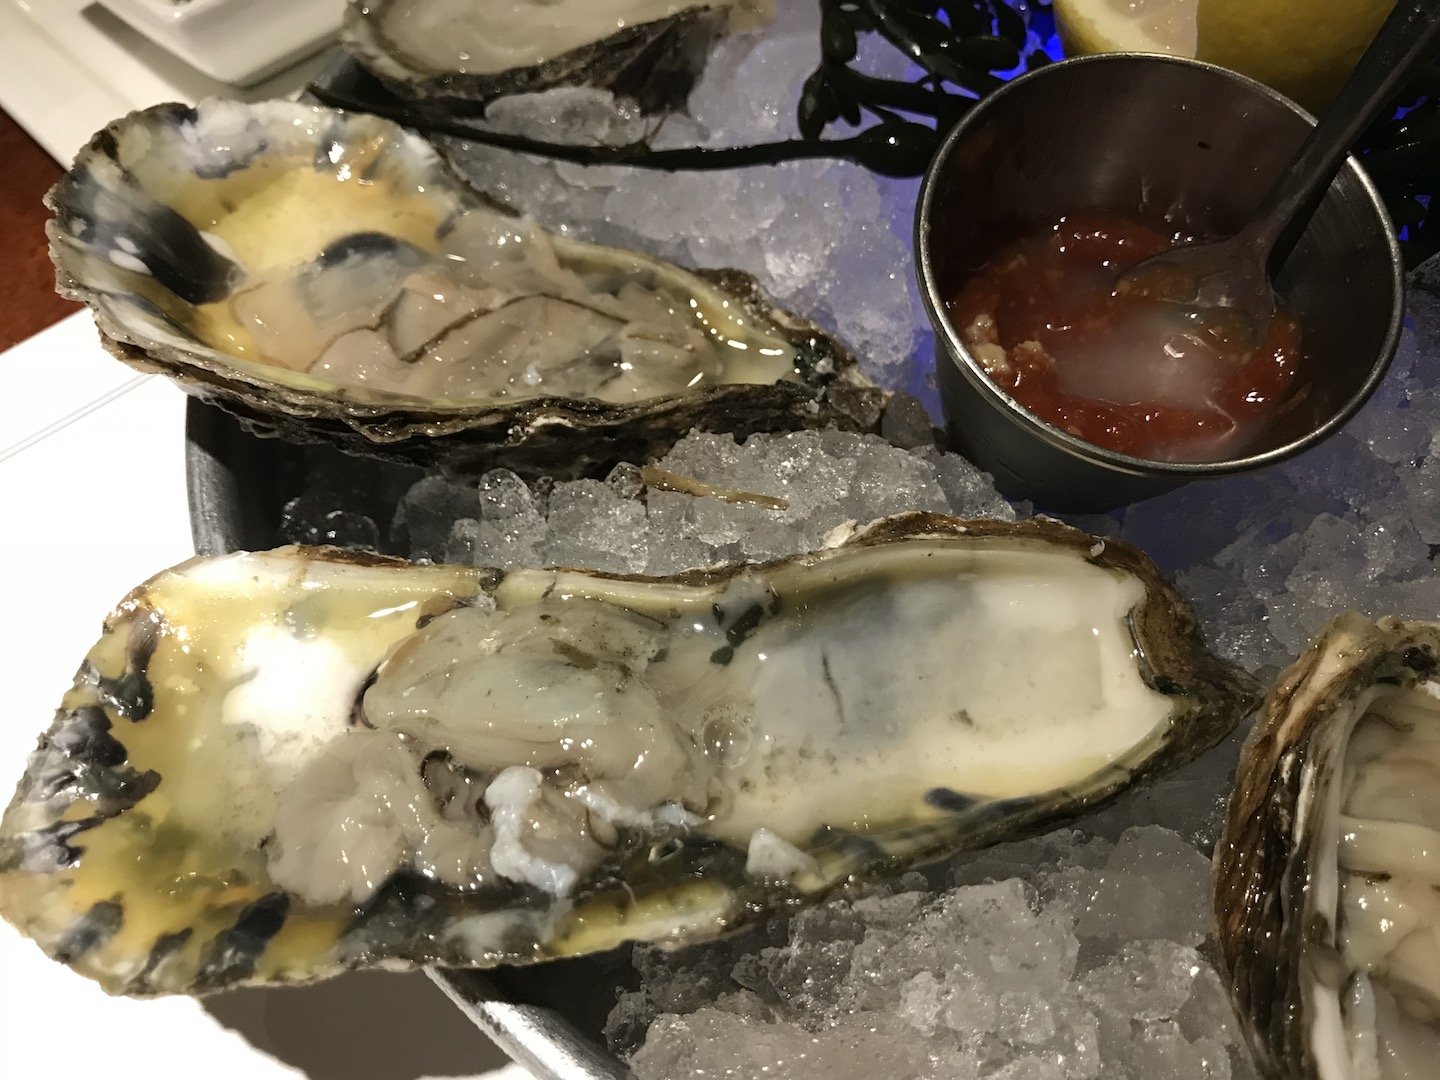 PB Catch's bluepoint oysters. Photo by Lynn Kalber.